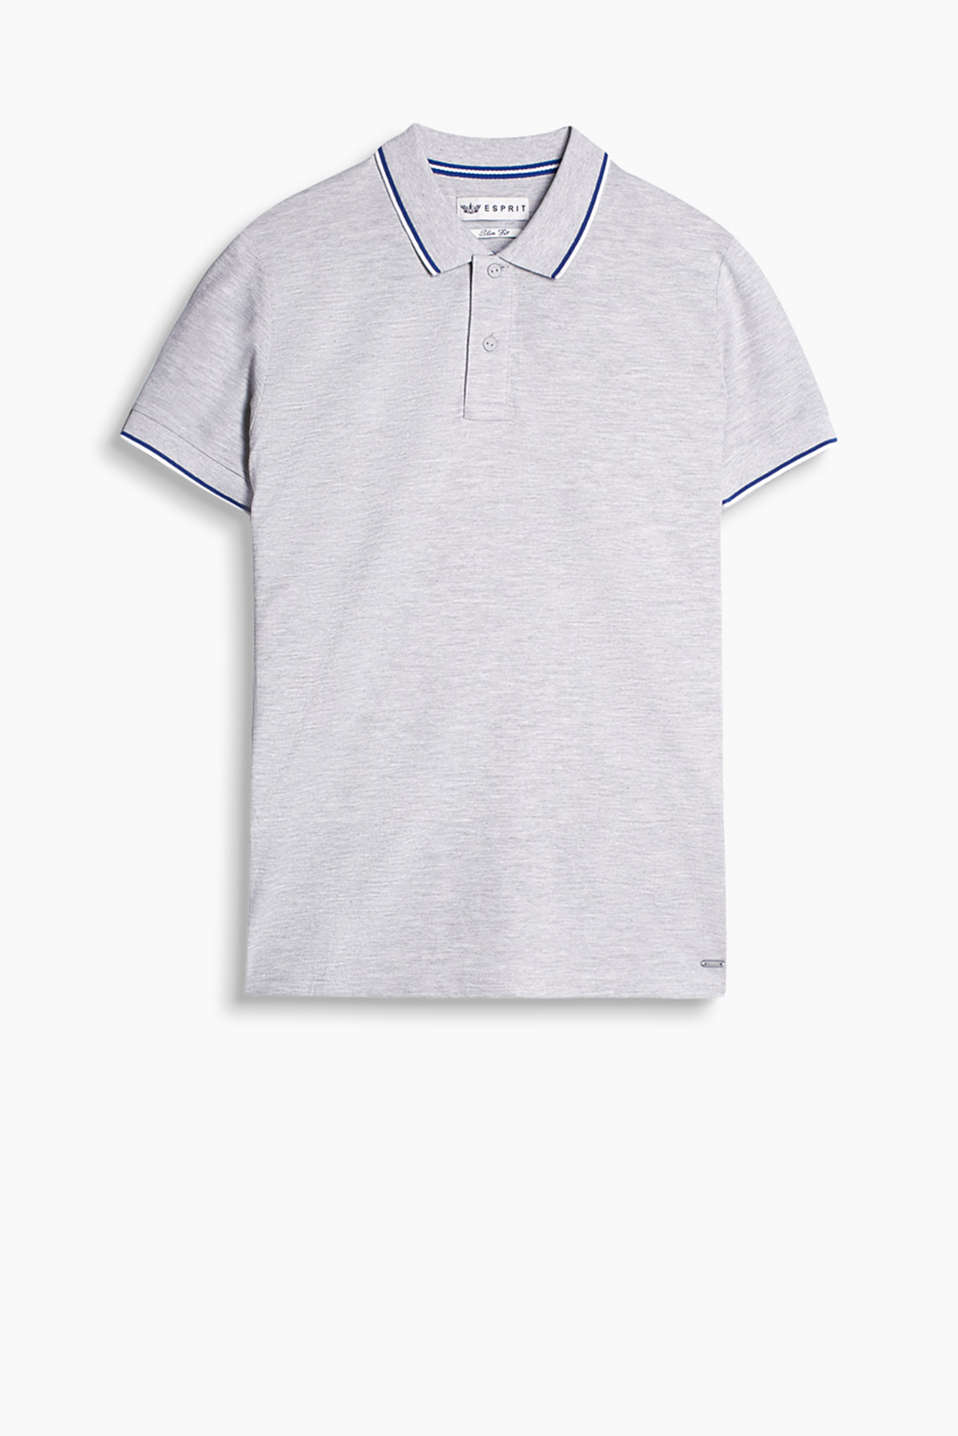 Polo shirt in blended cotton with nautical stripes on the collar and sleeve ends